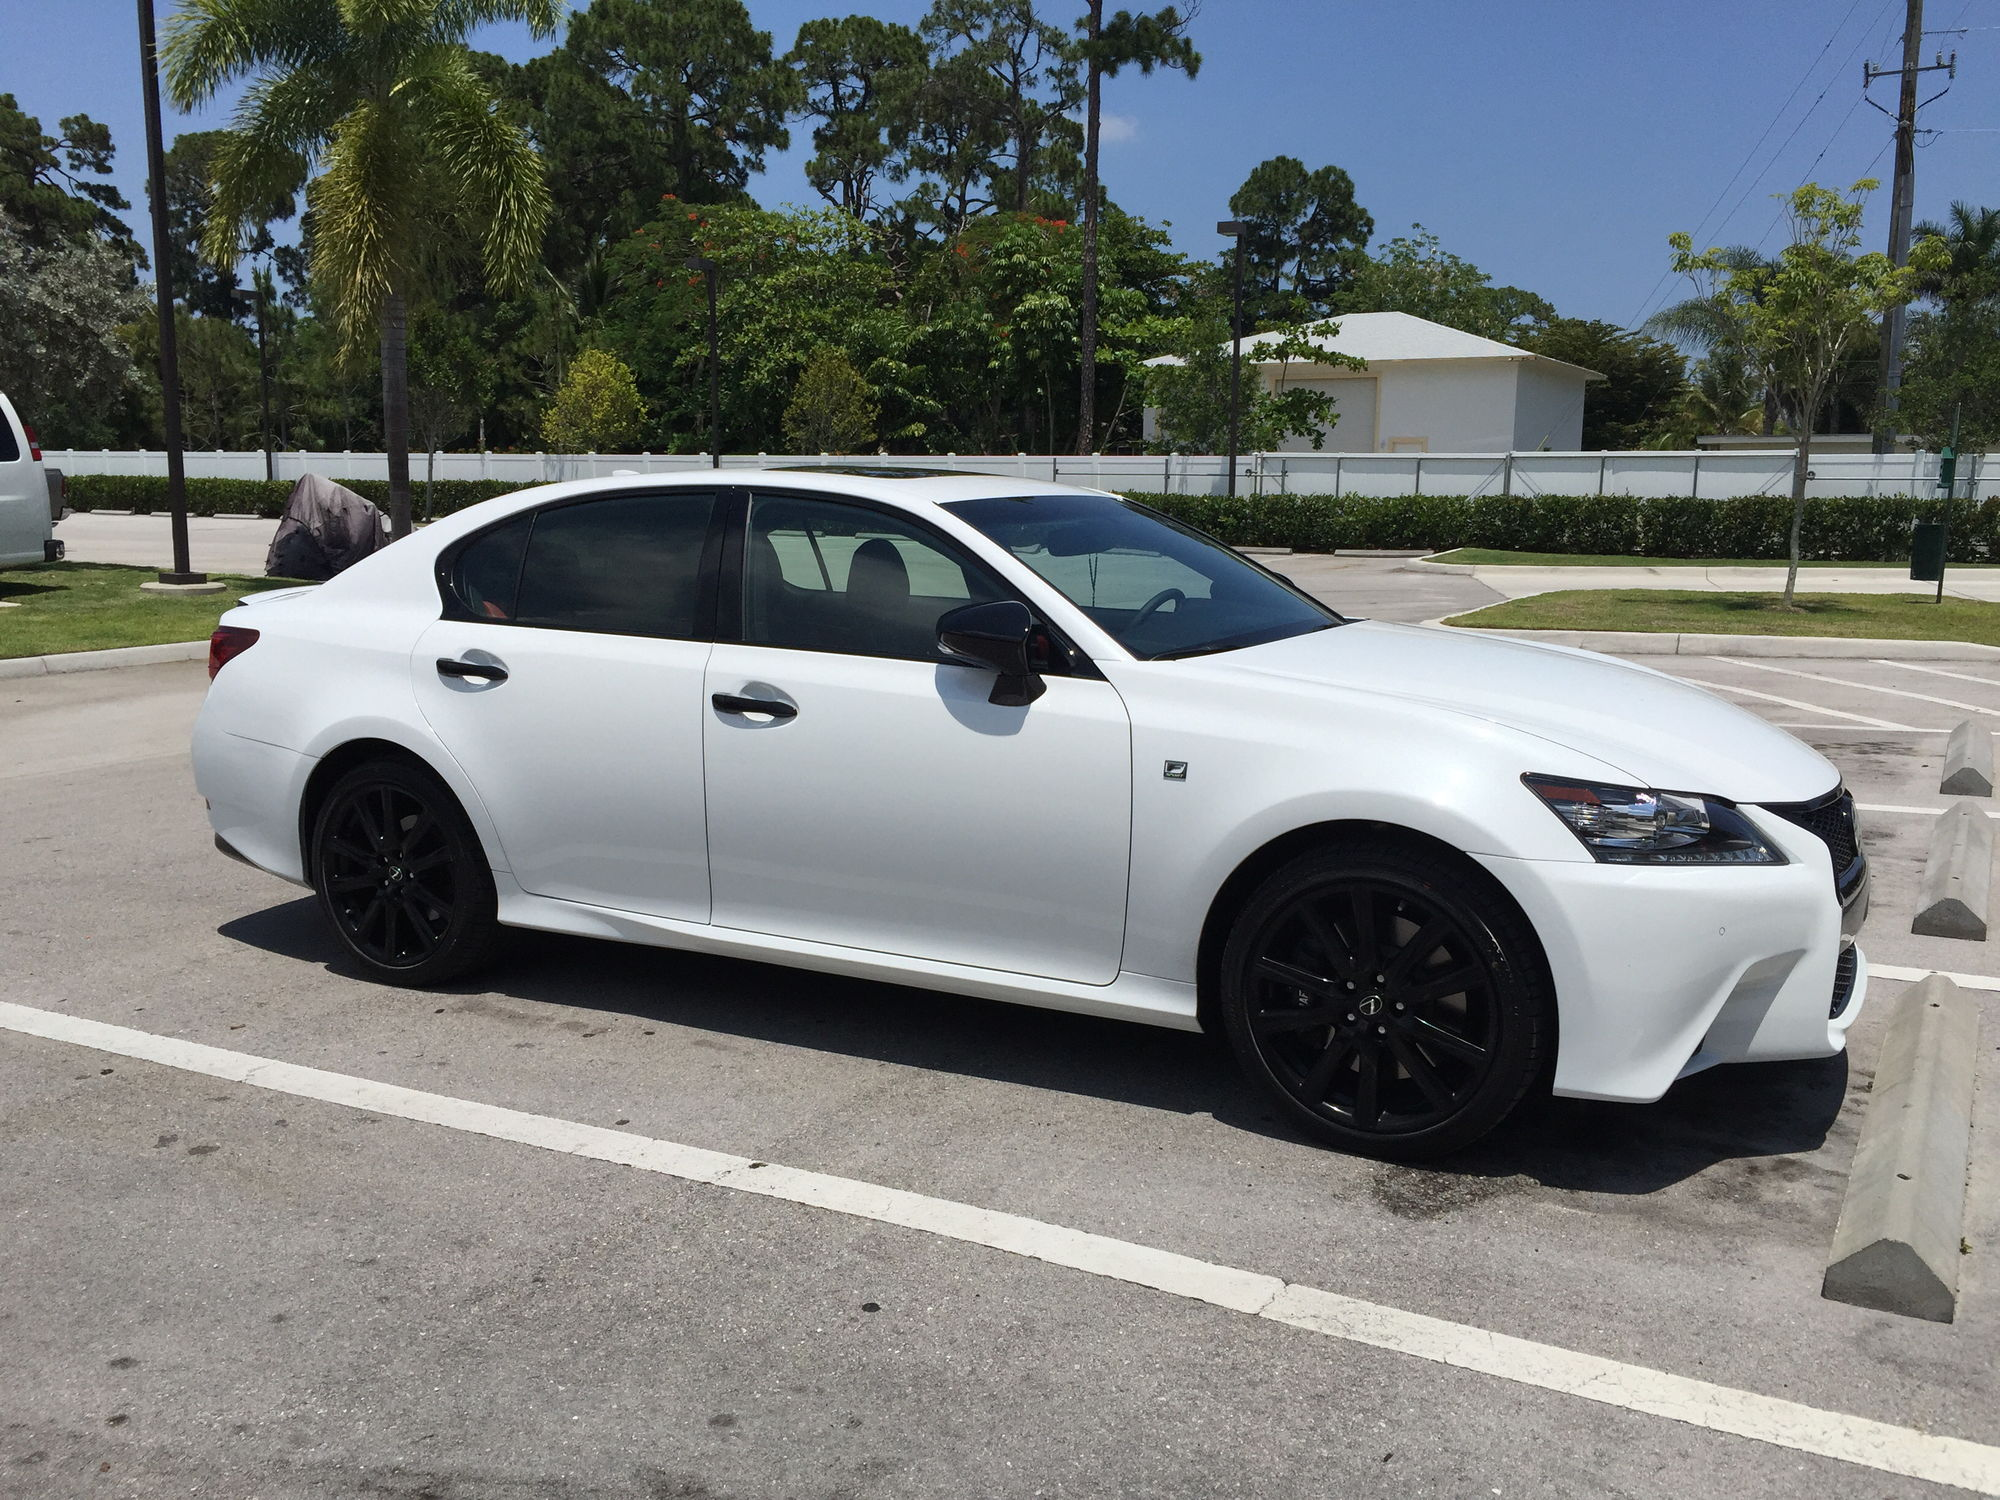 2015 Lexus GS 350 F Sport Crafted Edition!!! Silly